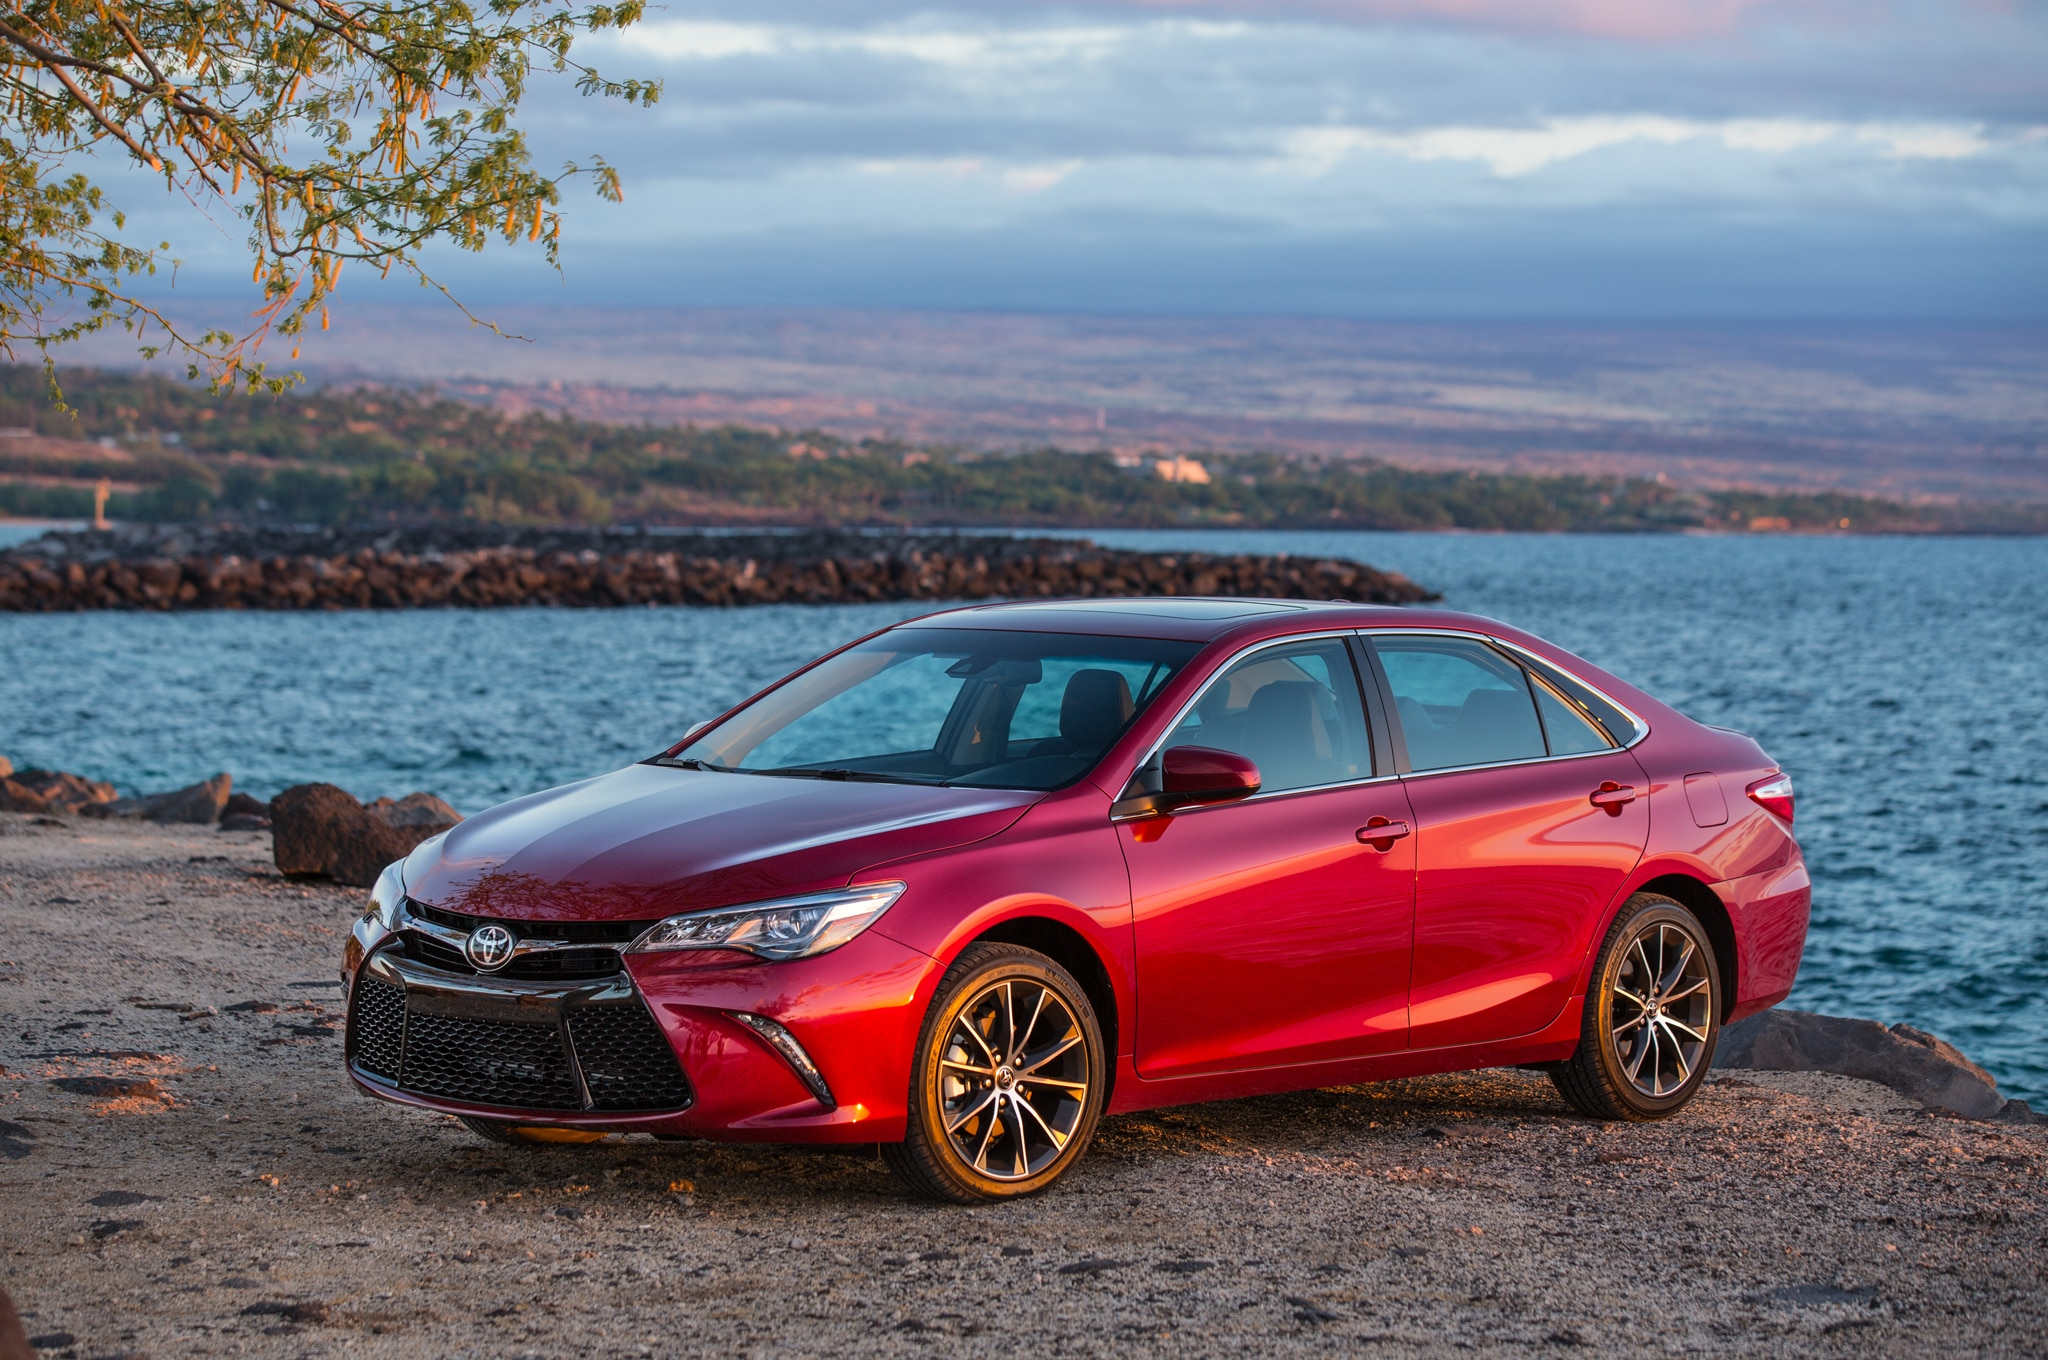 2015 Toyota Camry XSE front three quarters 11 toyota camry leads midsize segment in january 2015  at alyssarenee.co